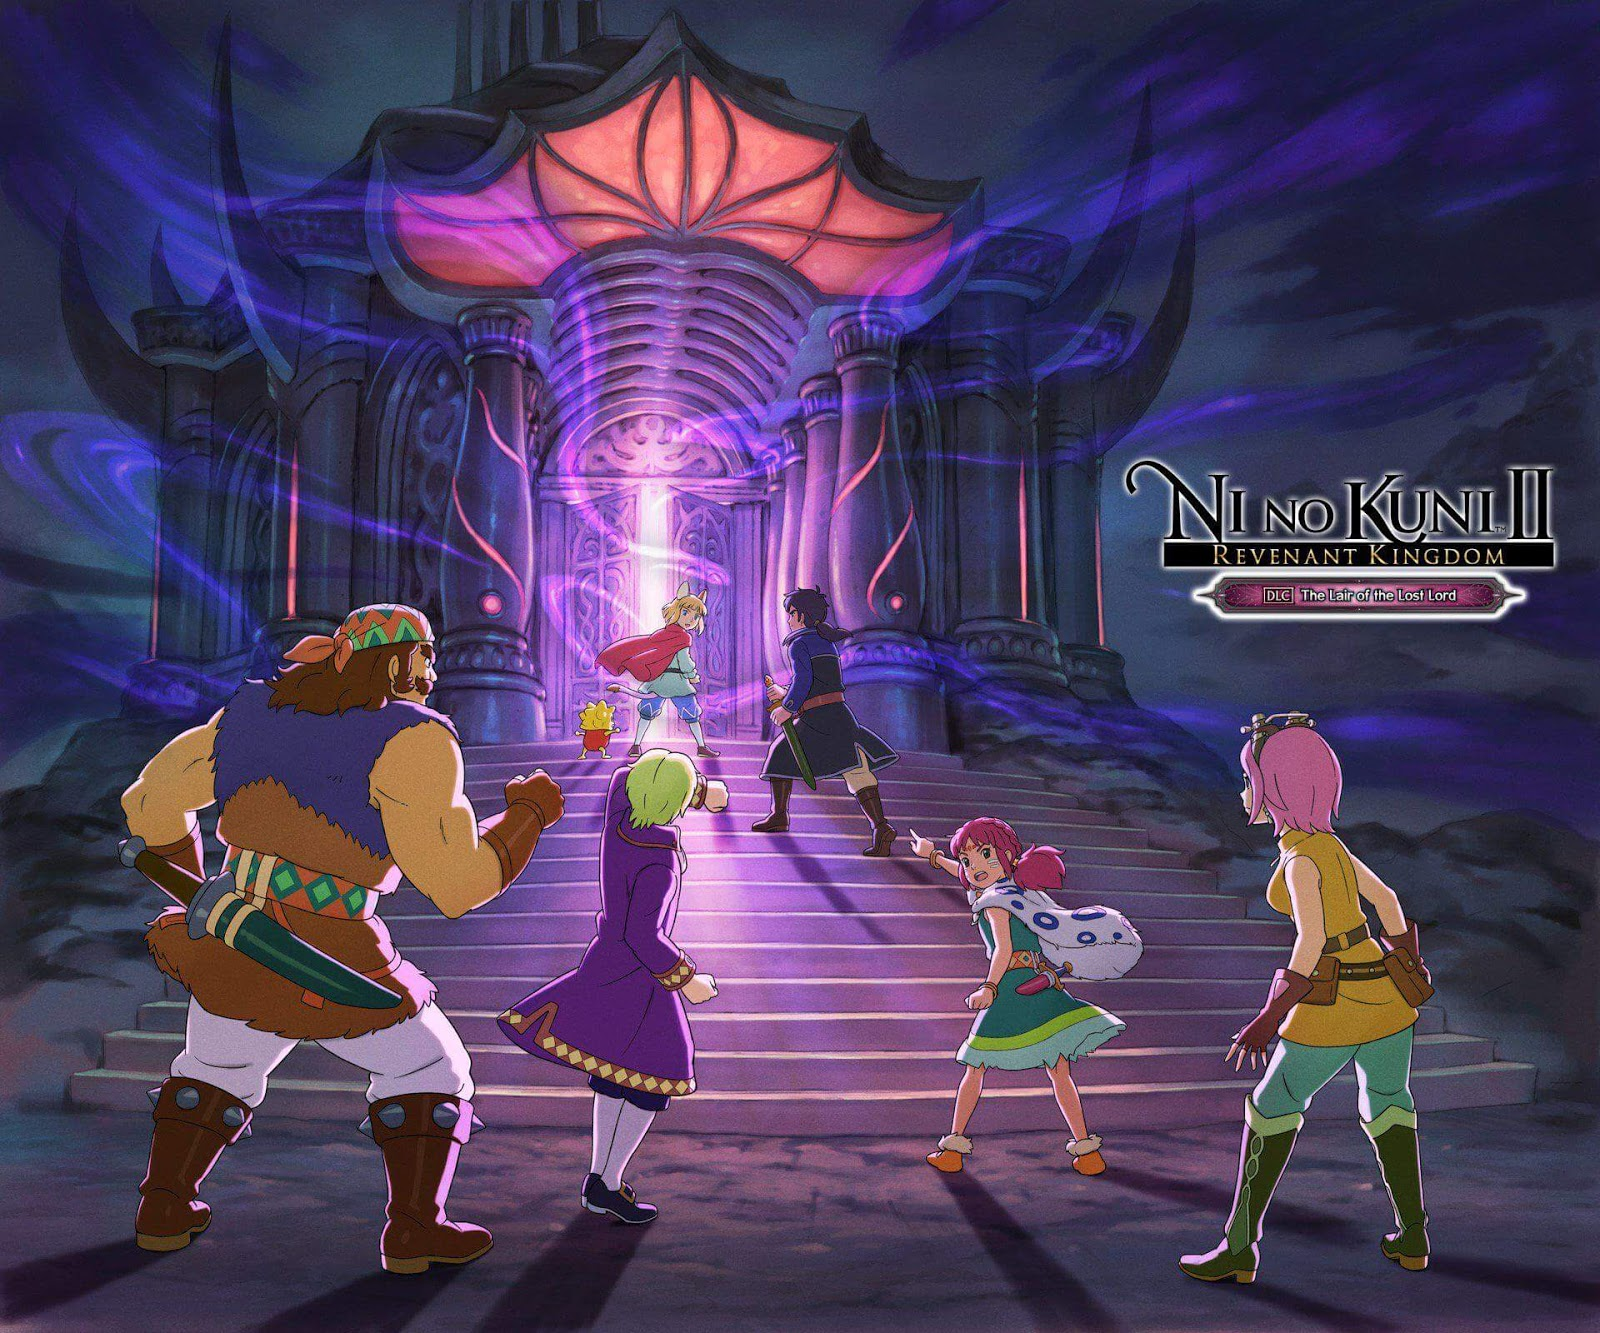 Ni No Kuni II The Lair of the Lost Lord New DLC Information Released